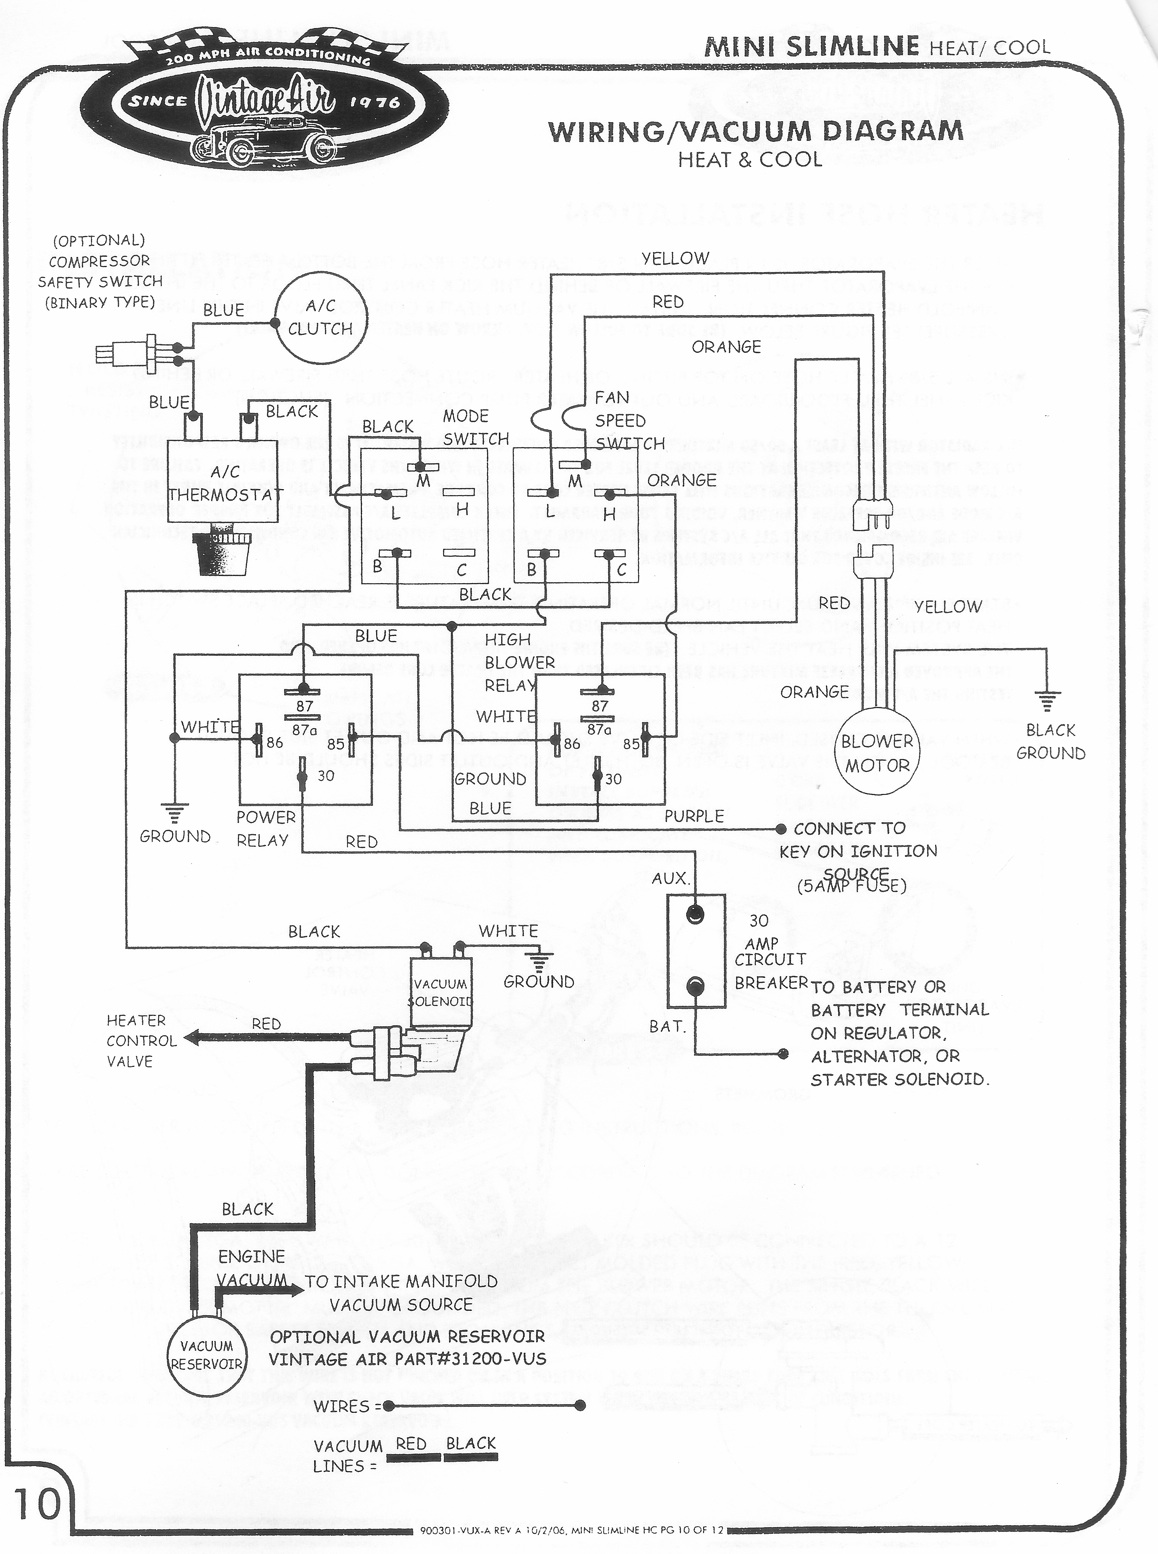 VA1 vintage air wiring diagram efcaviation com 1956 Bel Air Wiring Diagram at reclaimingppi.co